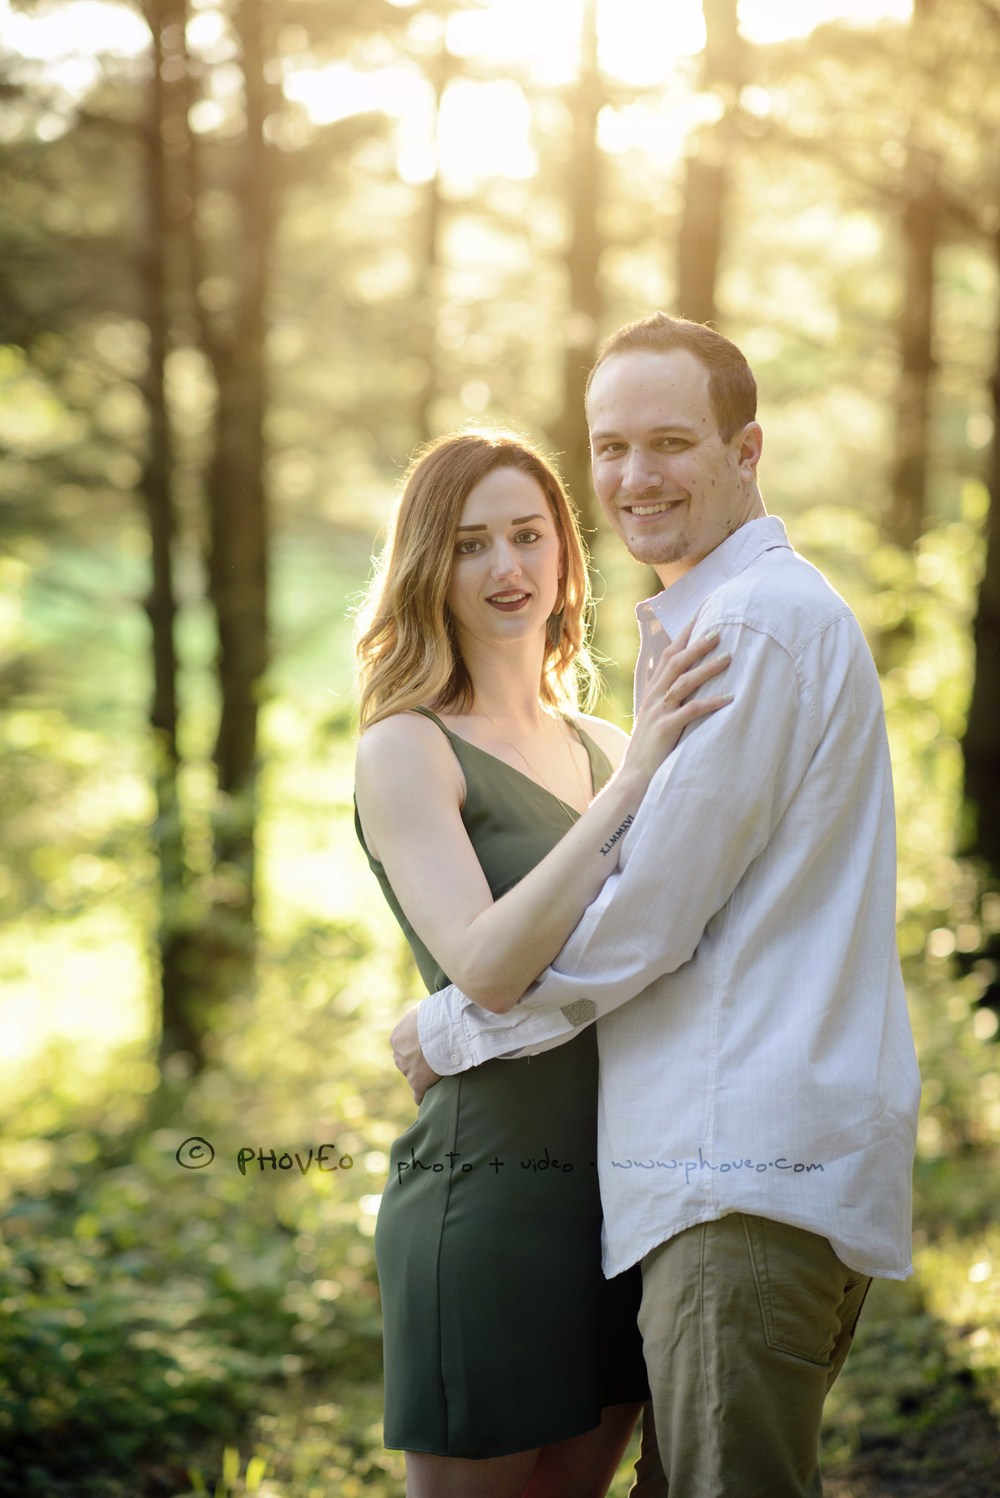 WM_20160539_Shelby+Anthony_26.jpg